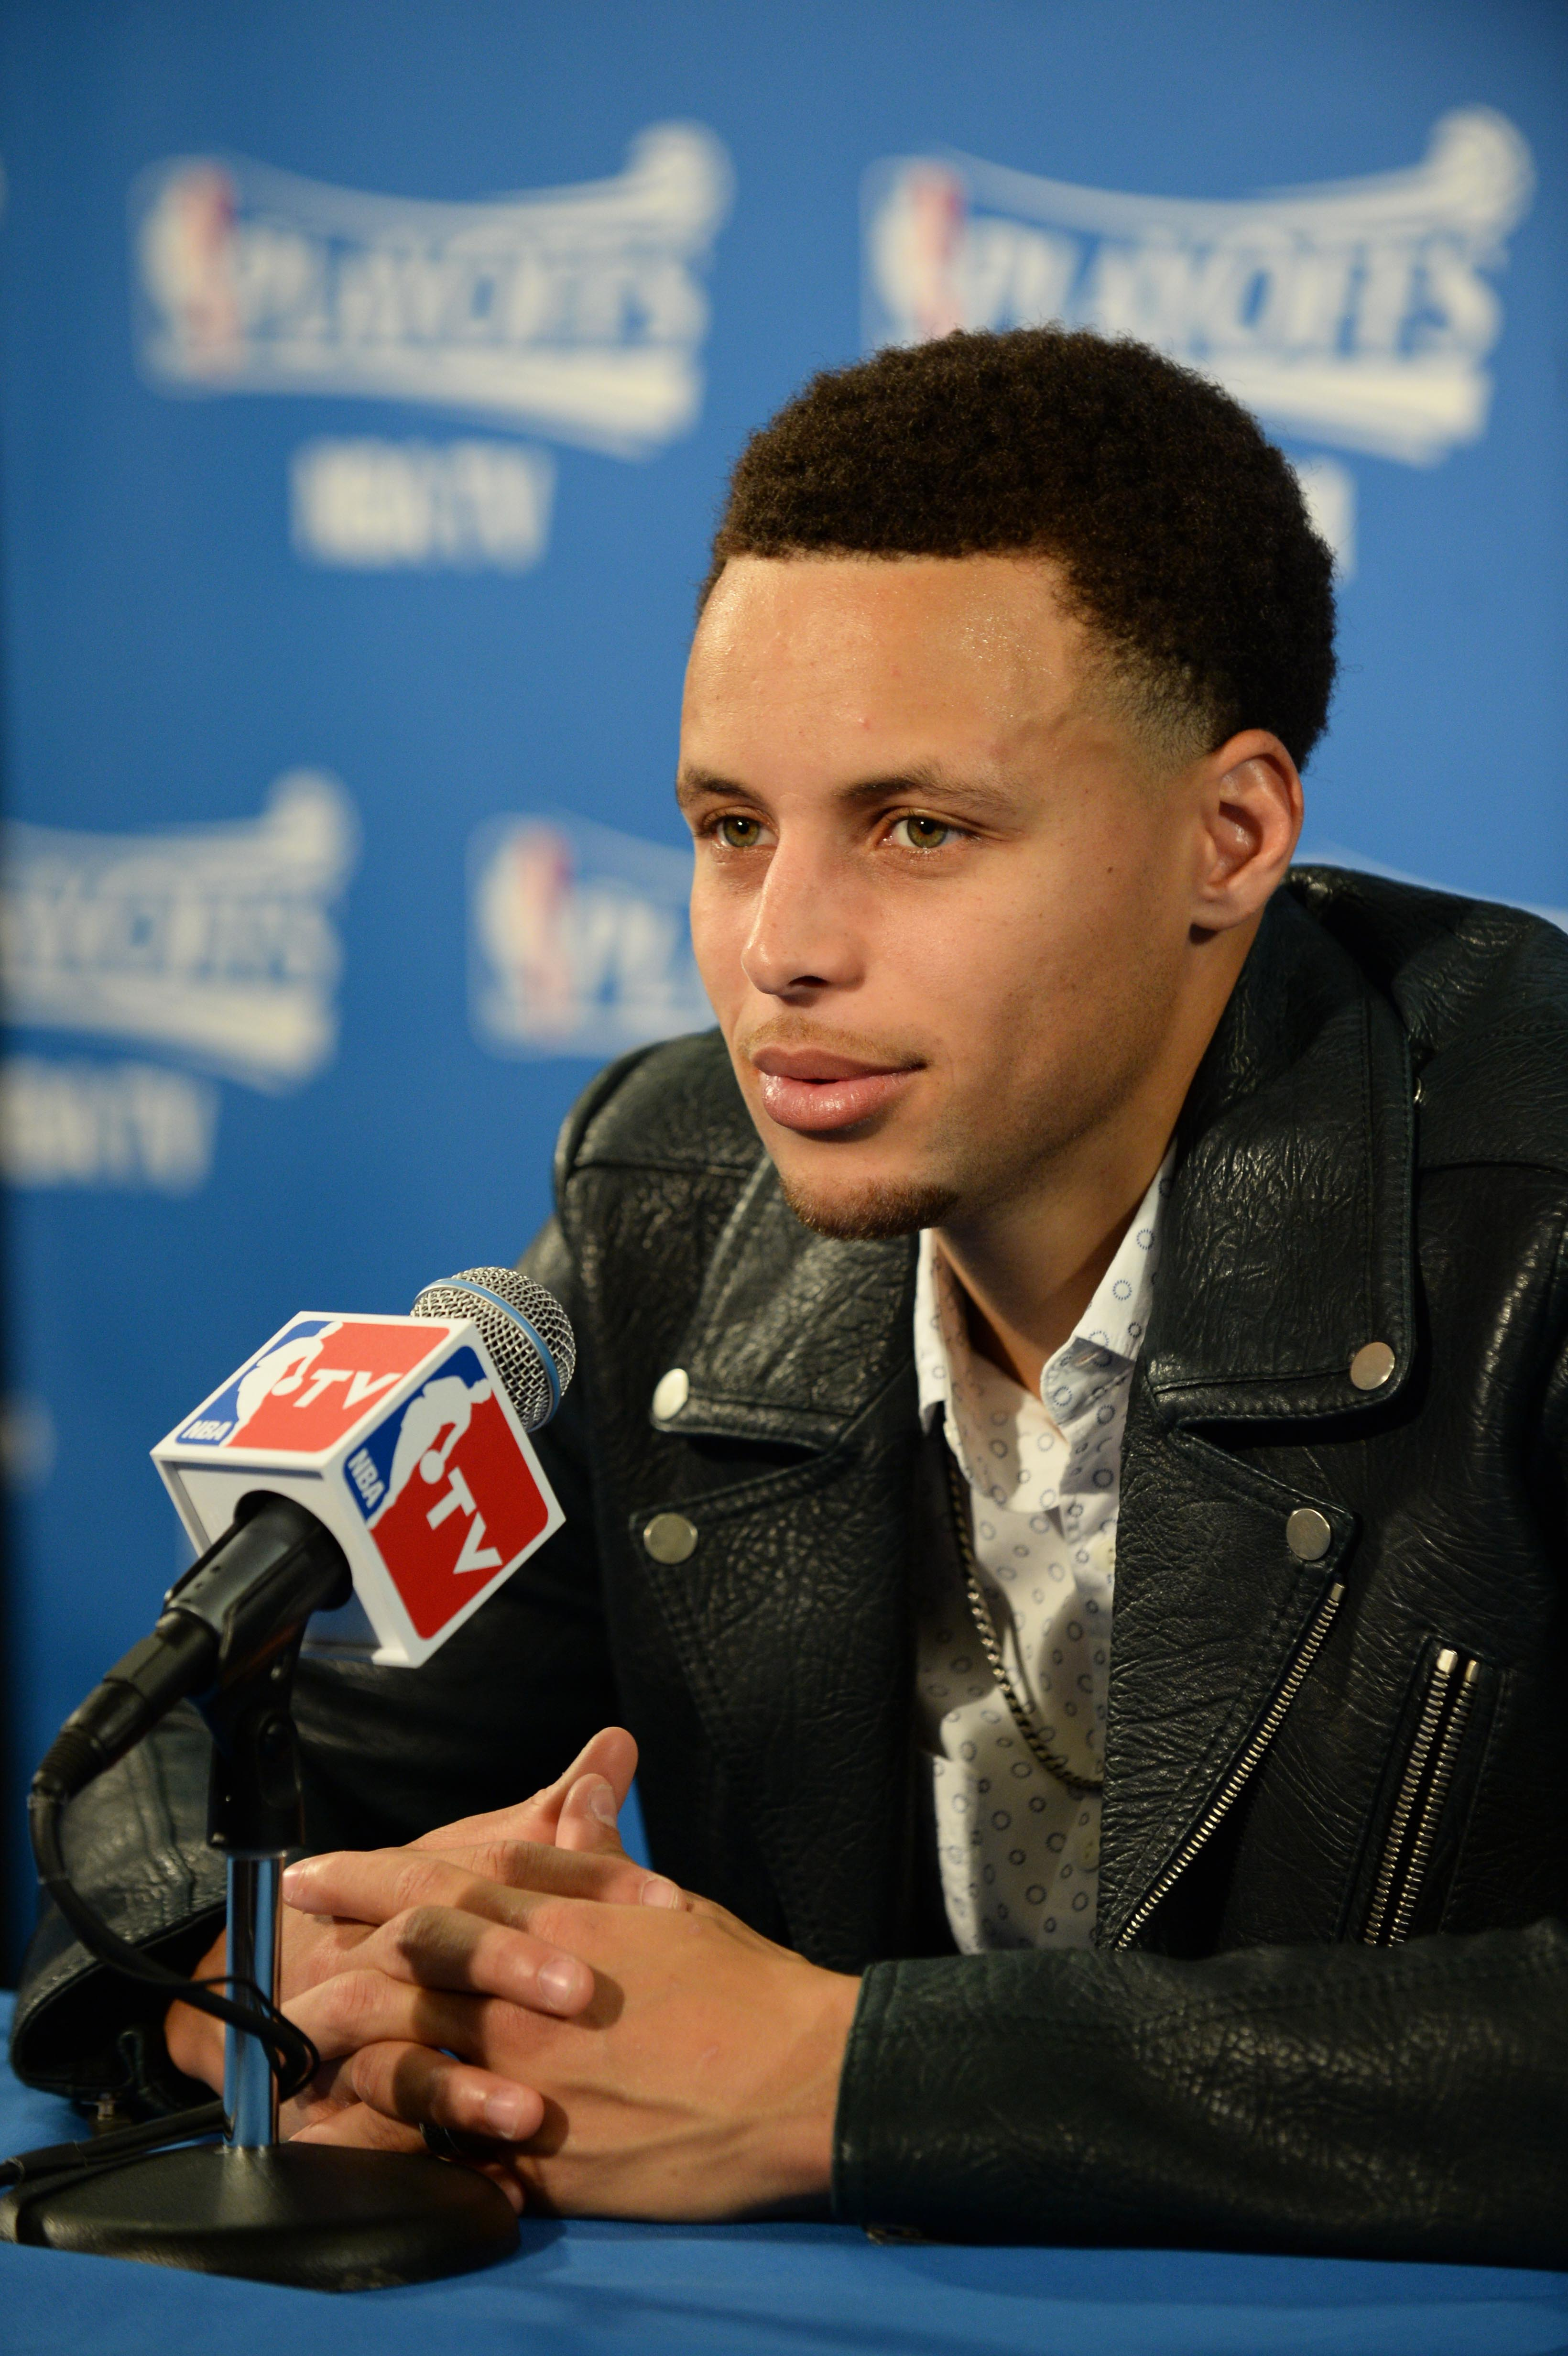 OAKLAND, CA MAY 3:  Stephen Curry #30 of the Golden State Warriors speaks to the media after the win against the Memphis Grizzlies in Game One of the Western Conference Semifinals of the 2015 NBA Playoffs on May 3, 2015 at Oracle Arena in Oakland, Califor